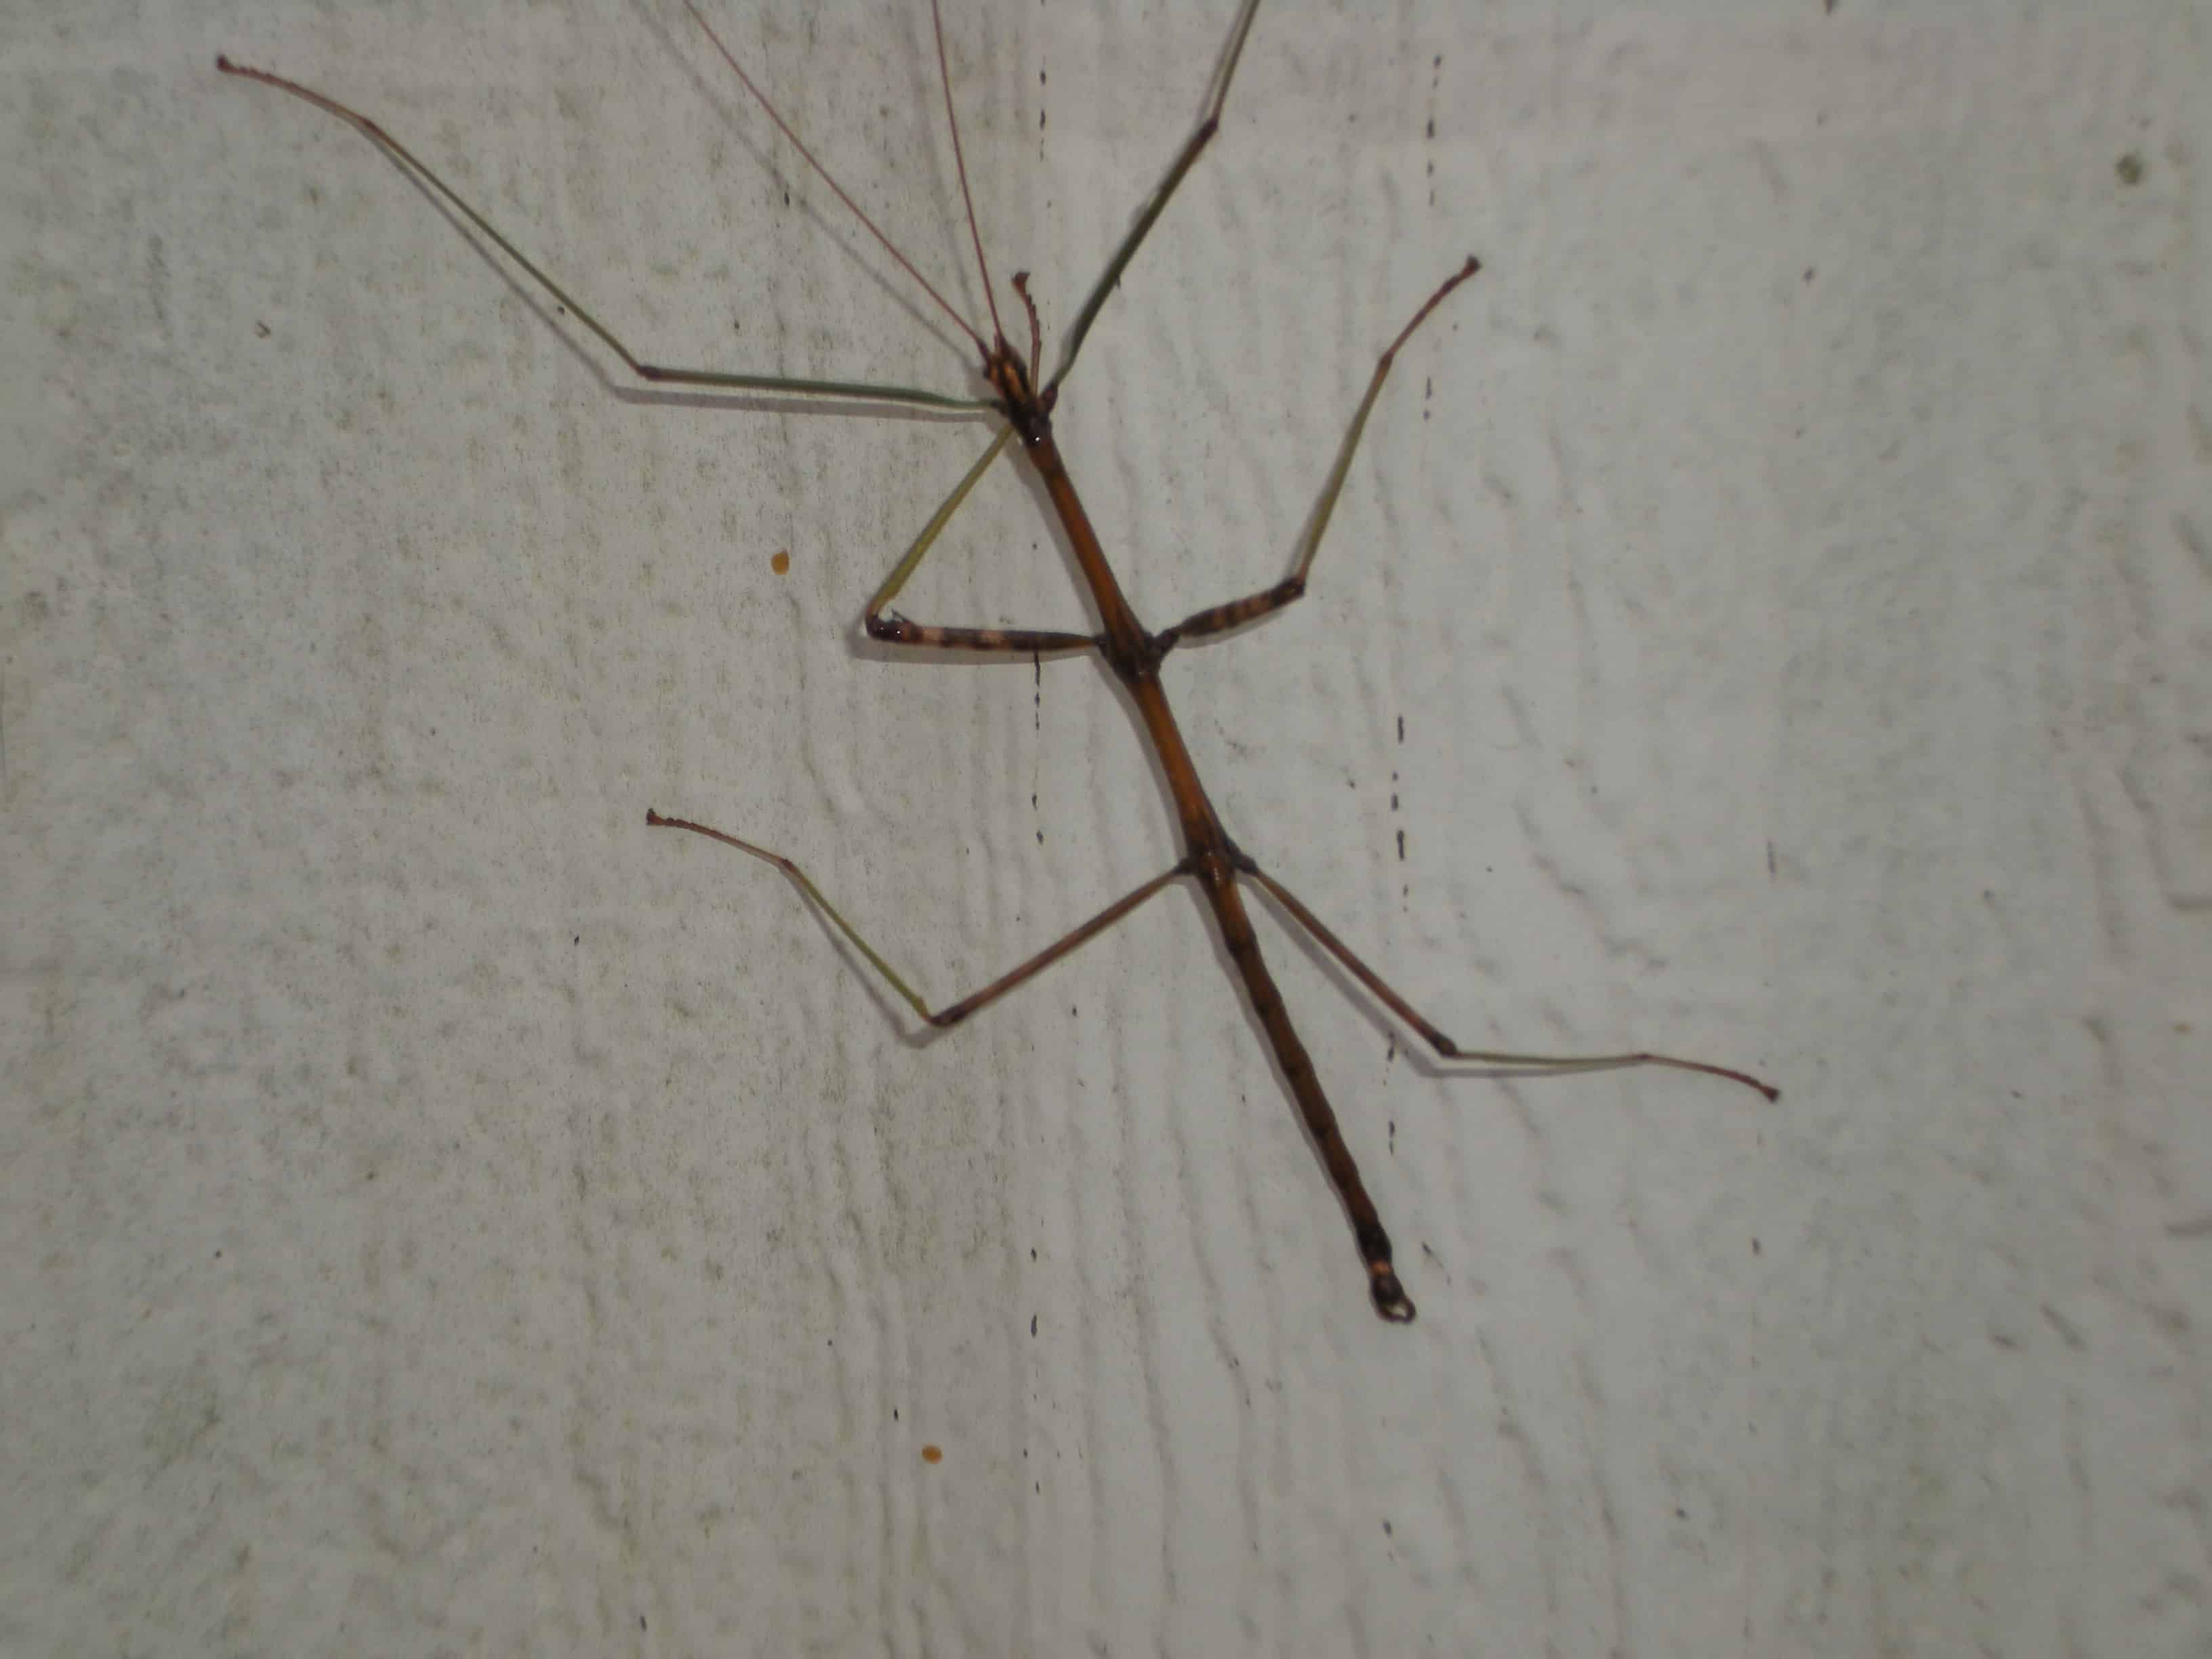 One of our Walking Sticks